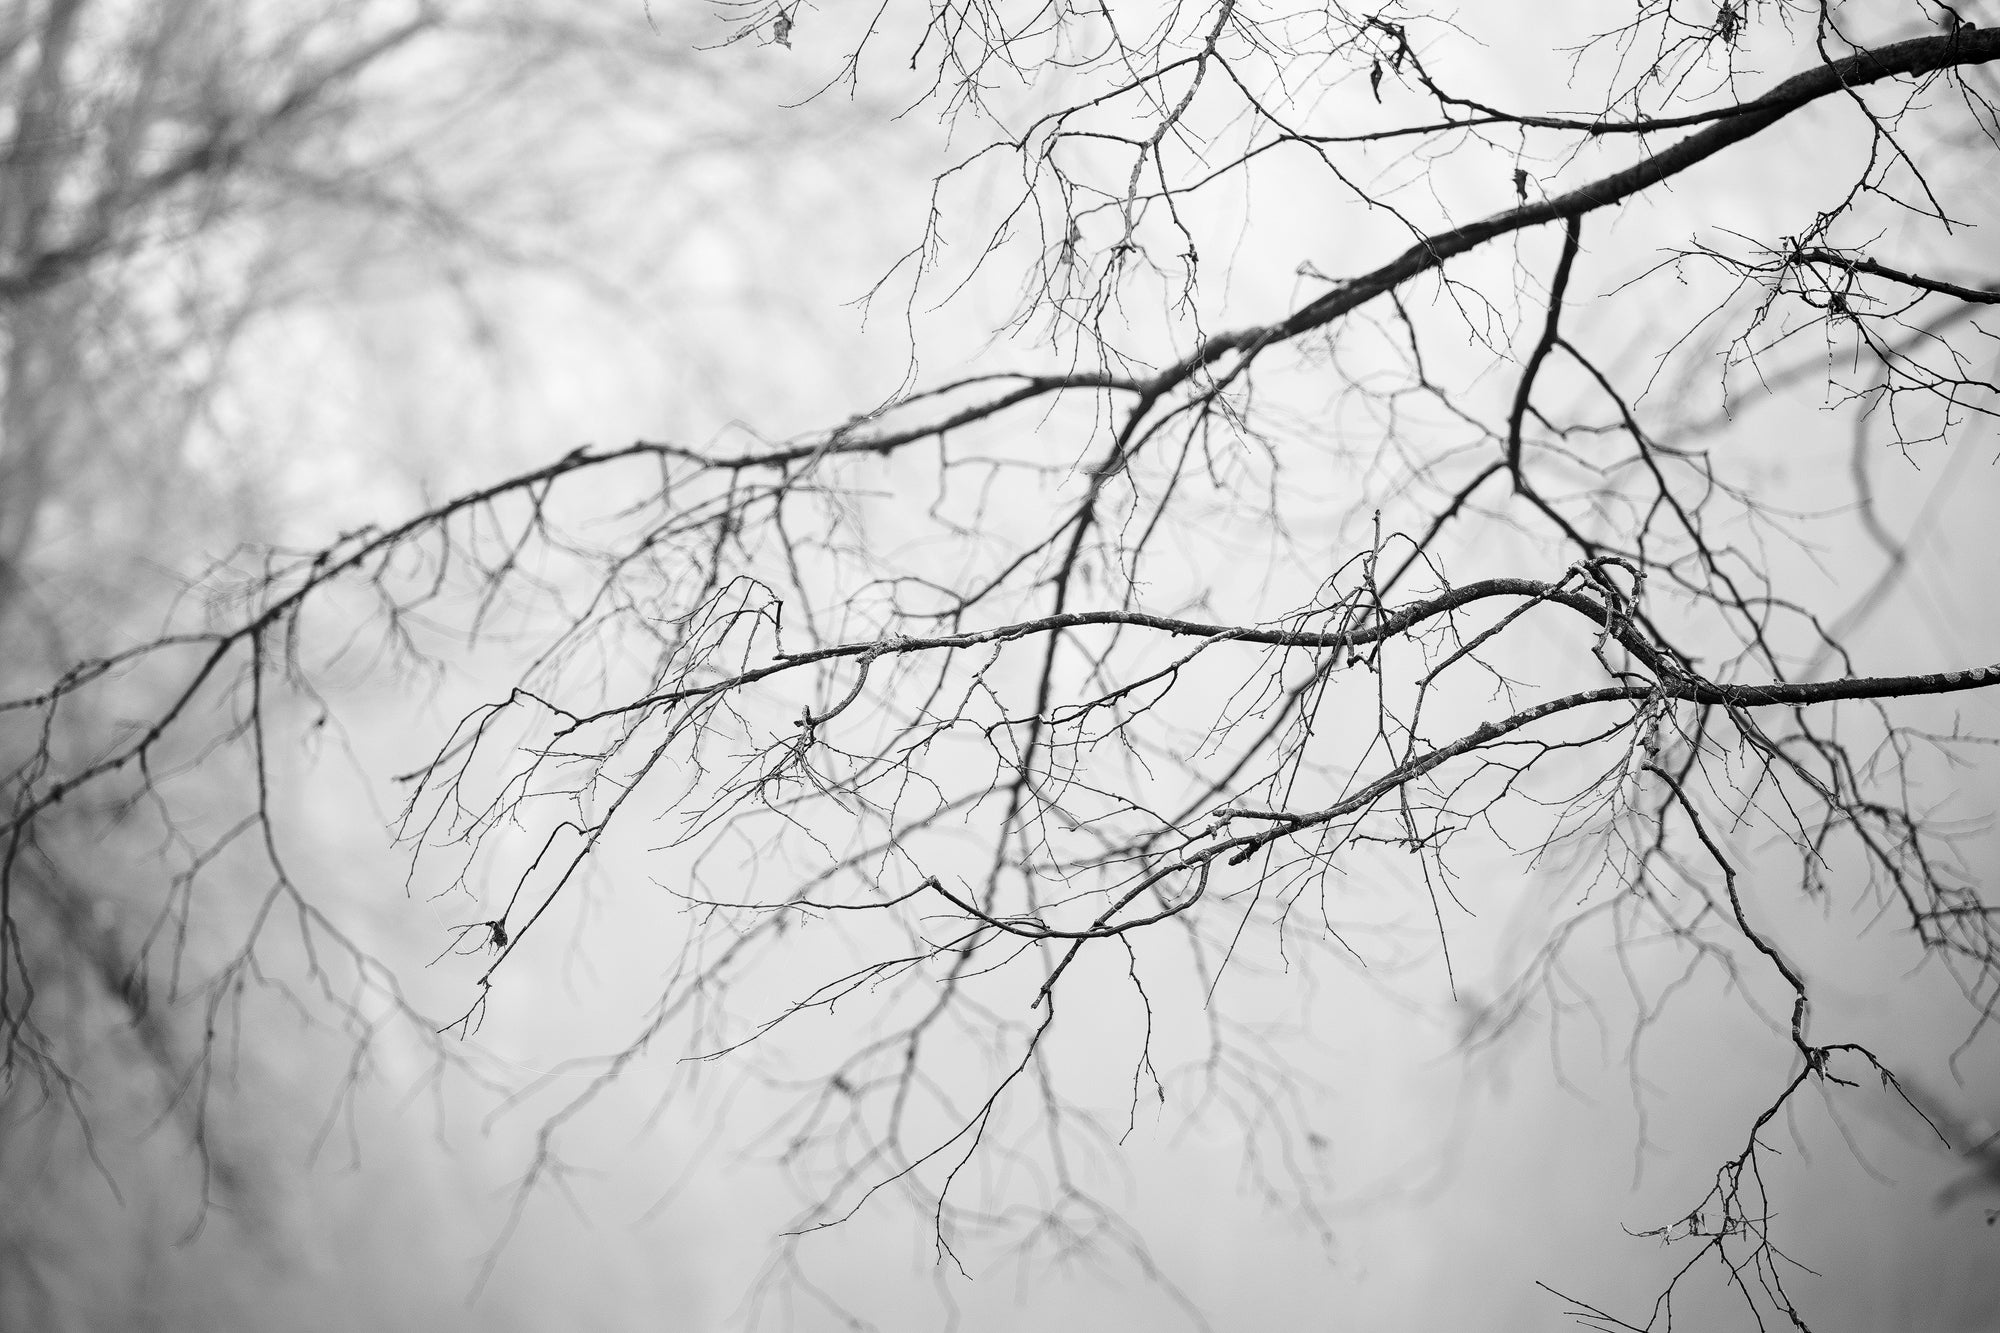 Winter Branches - Black and White Landscape Photograph by Keith Dotson. Click to buy a fine art print.